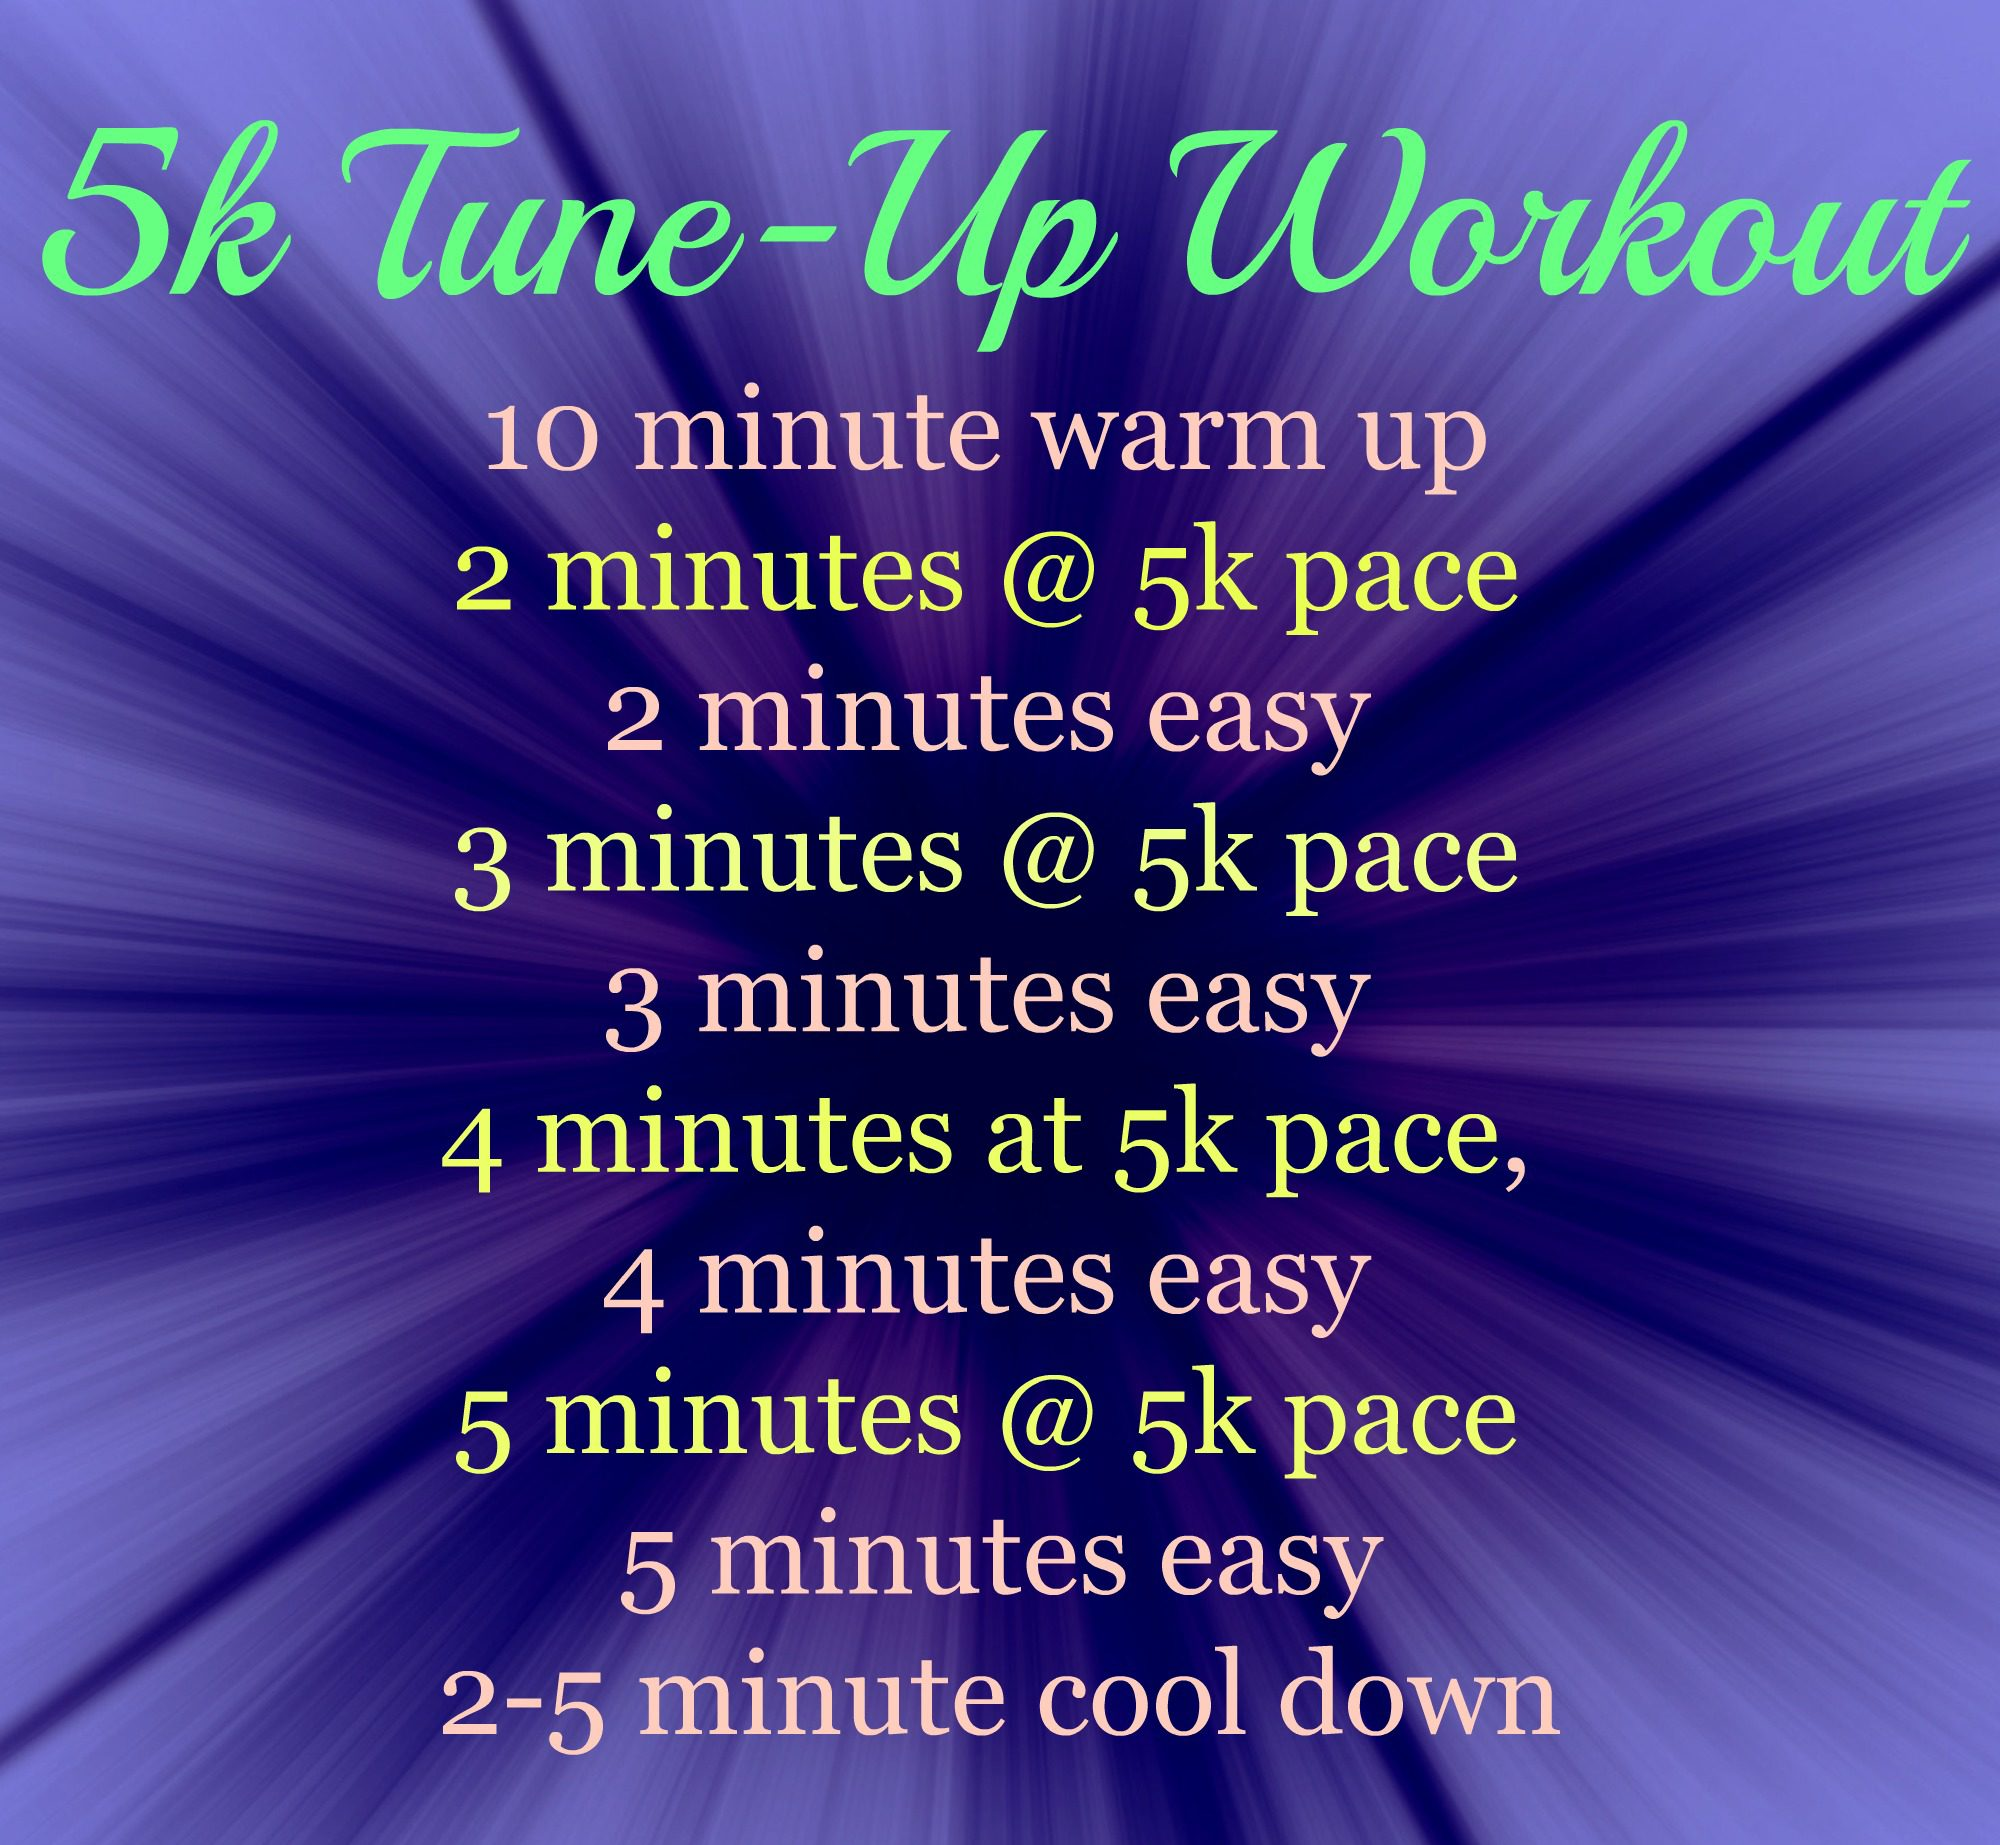 5k Tune up workout